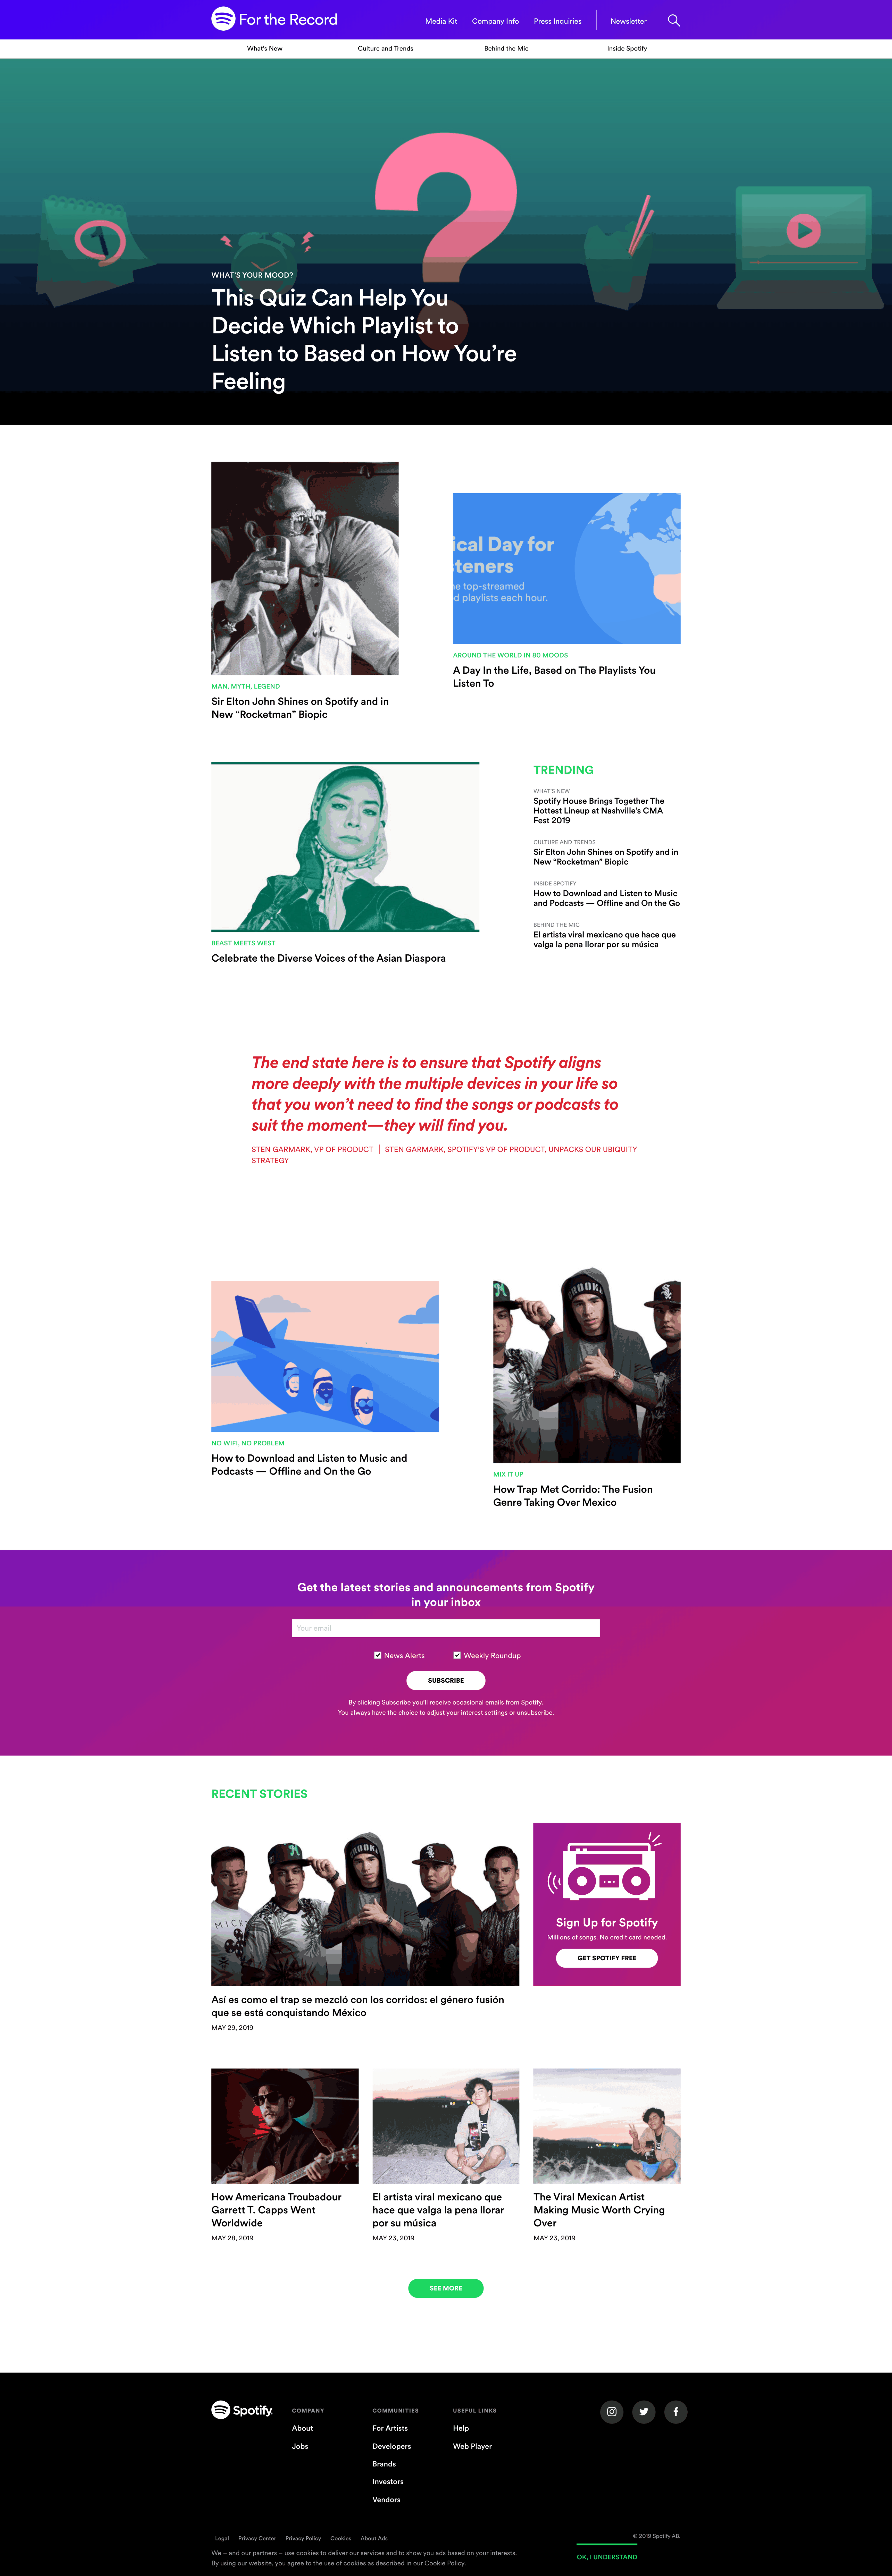 Homepage by Spotify For the Record